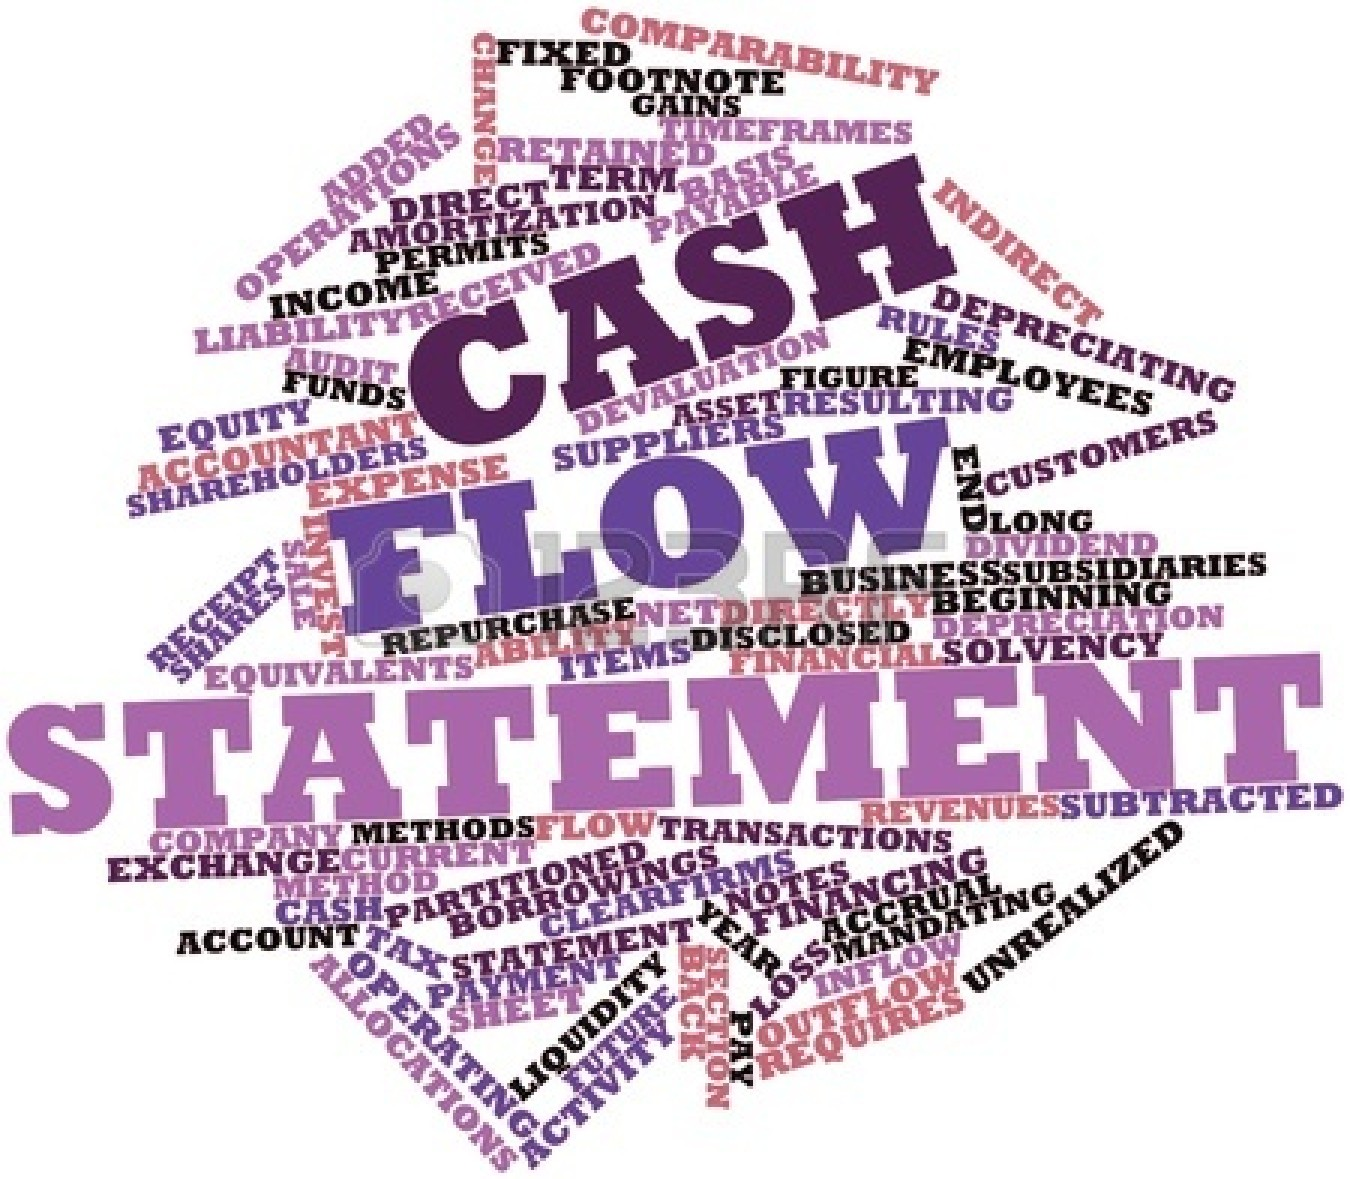 the Cash flow statement | Clipart Panda - Free Clipart Images png freeuse